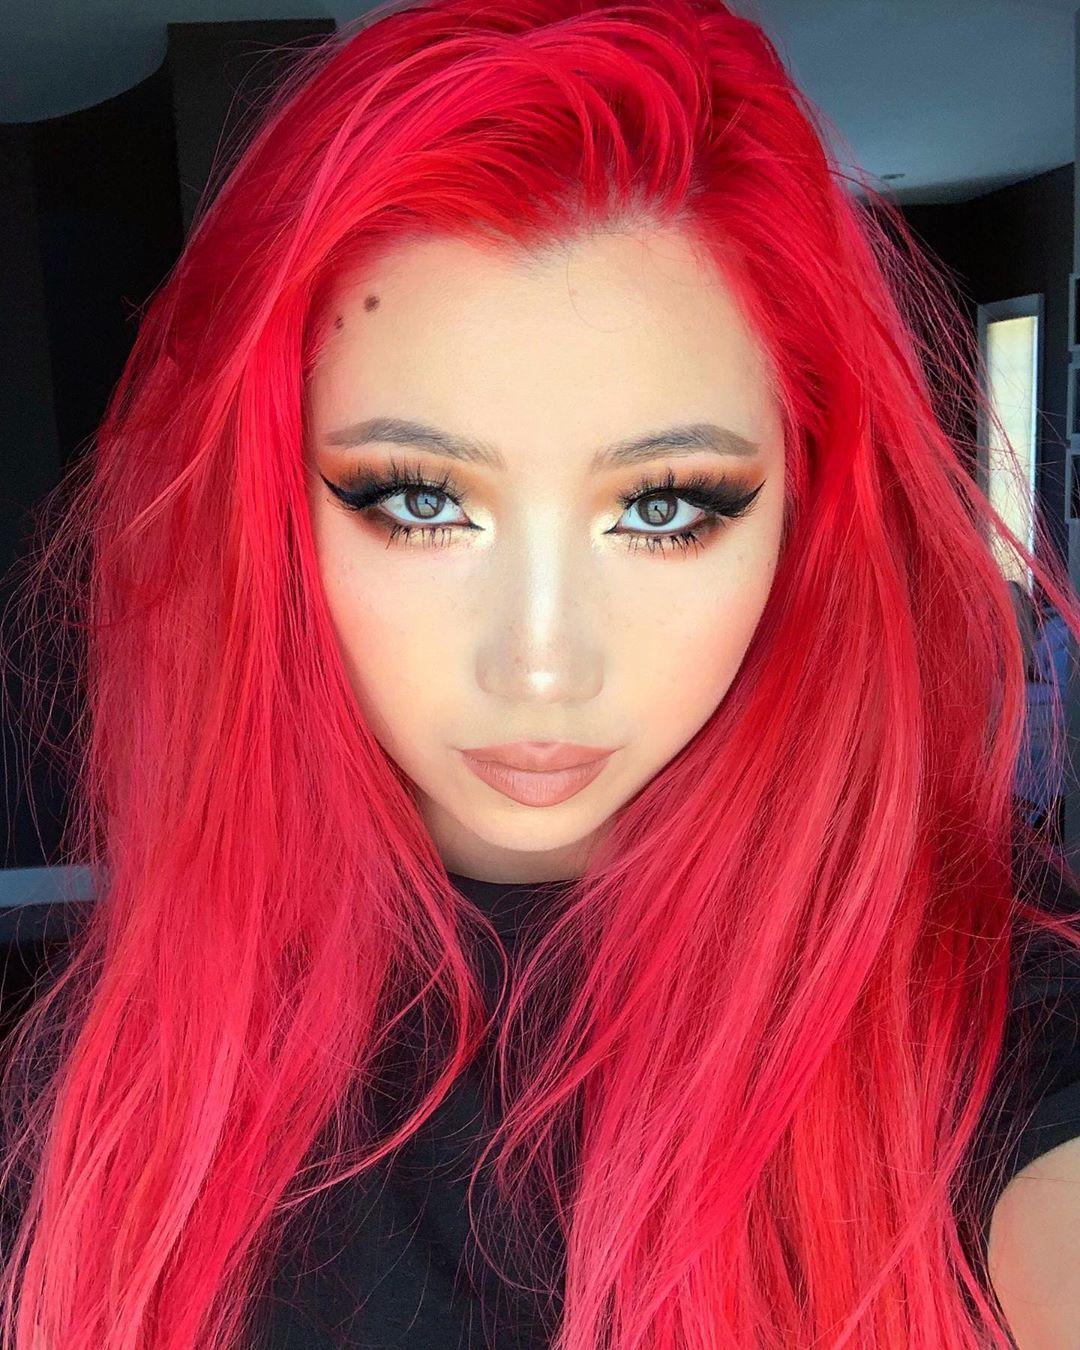 Arctic Fox Hair Color Katanvka Refreshed And Ready To Take On My Next Adventure Thanks For Amazing Hair Work As Alway Cool Hair Color Hair Color Fox Hair Dye